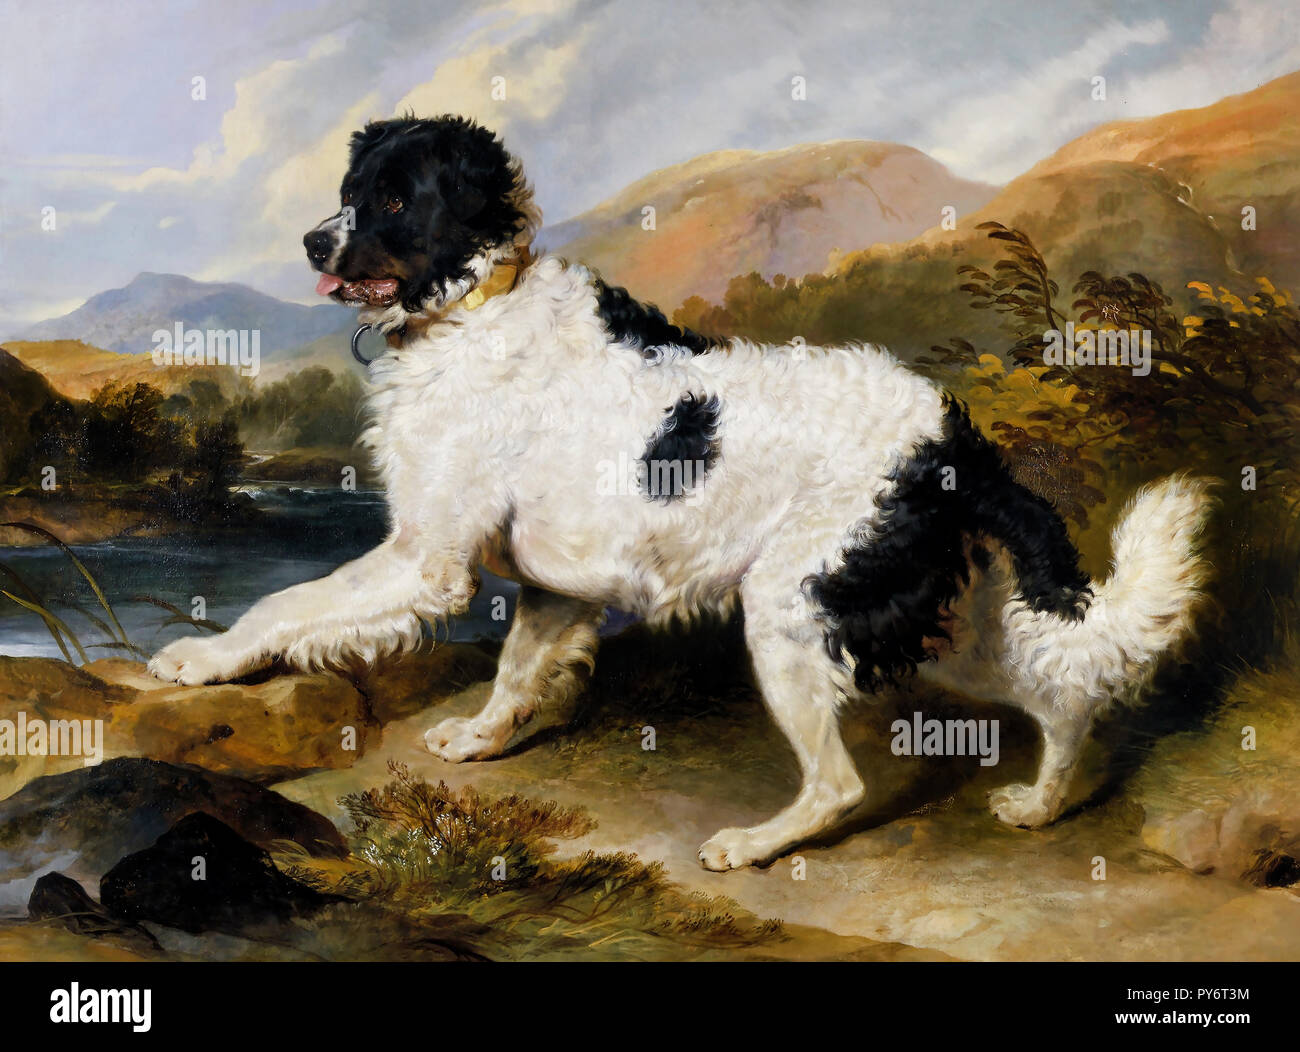 Edwin Henry Landseer, Lion: A Newfoundland Dog 1824 Oil on canvas, Victoria and Albert Museum, London, England. - Stock Image